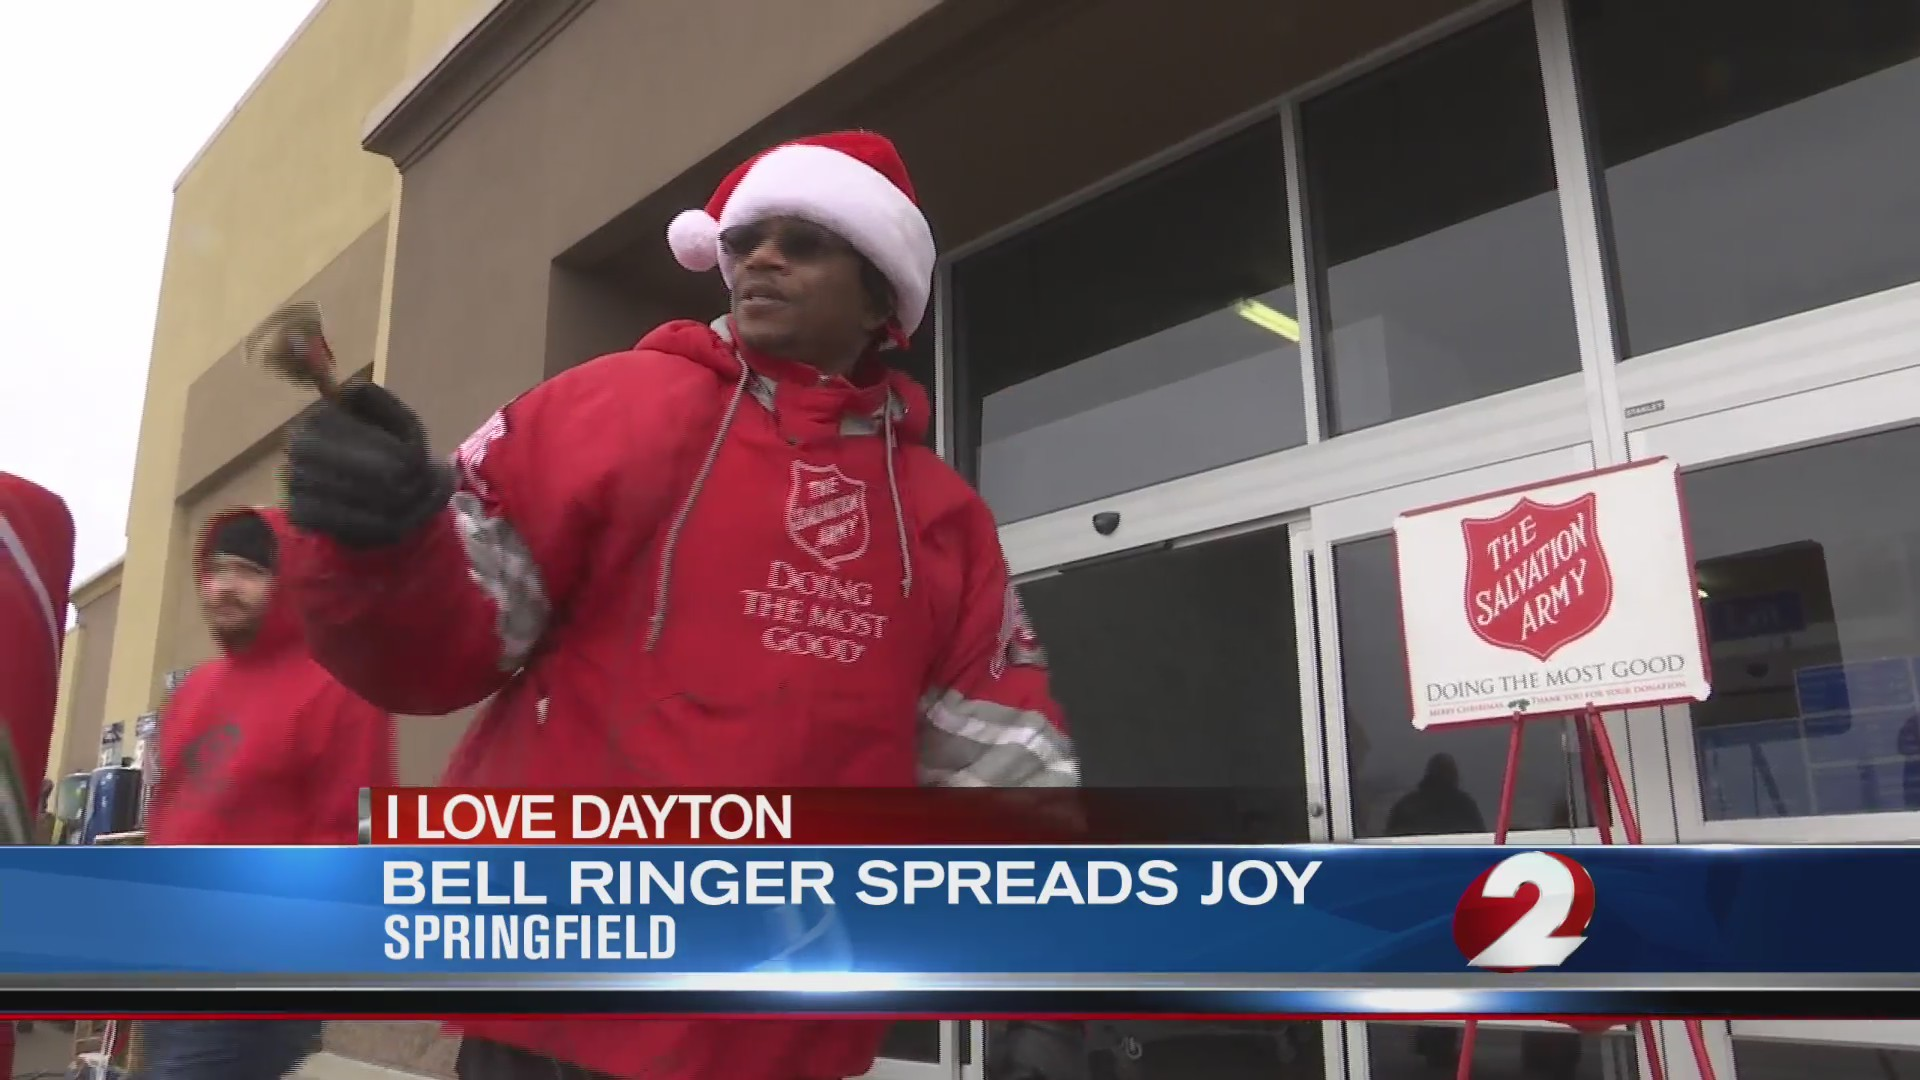 I Love Dayton: Bell ringer spreads joy